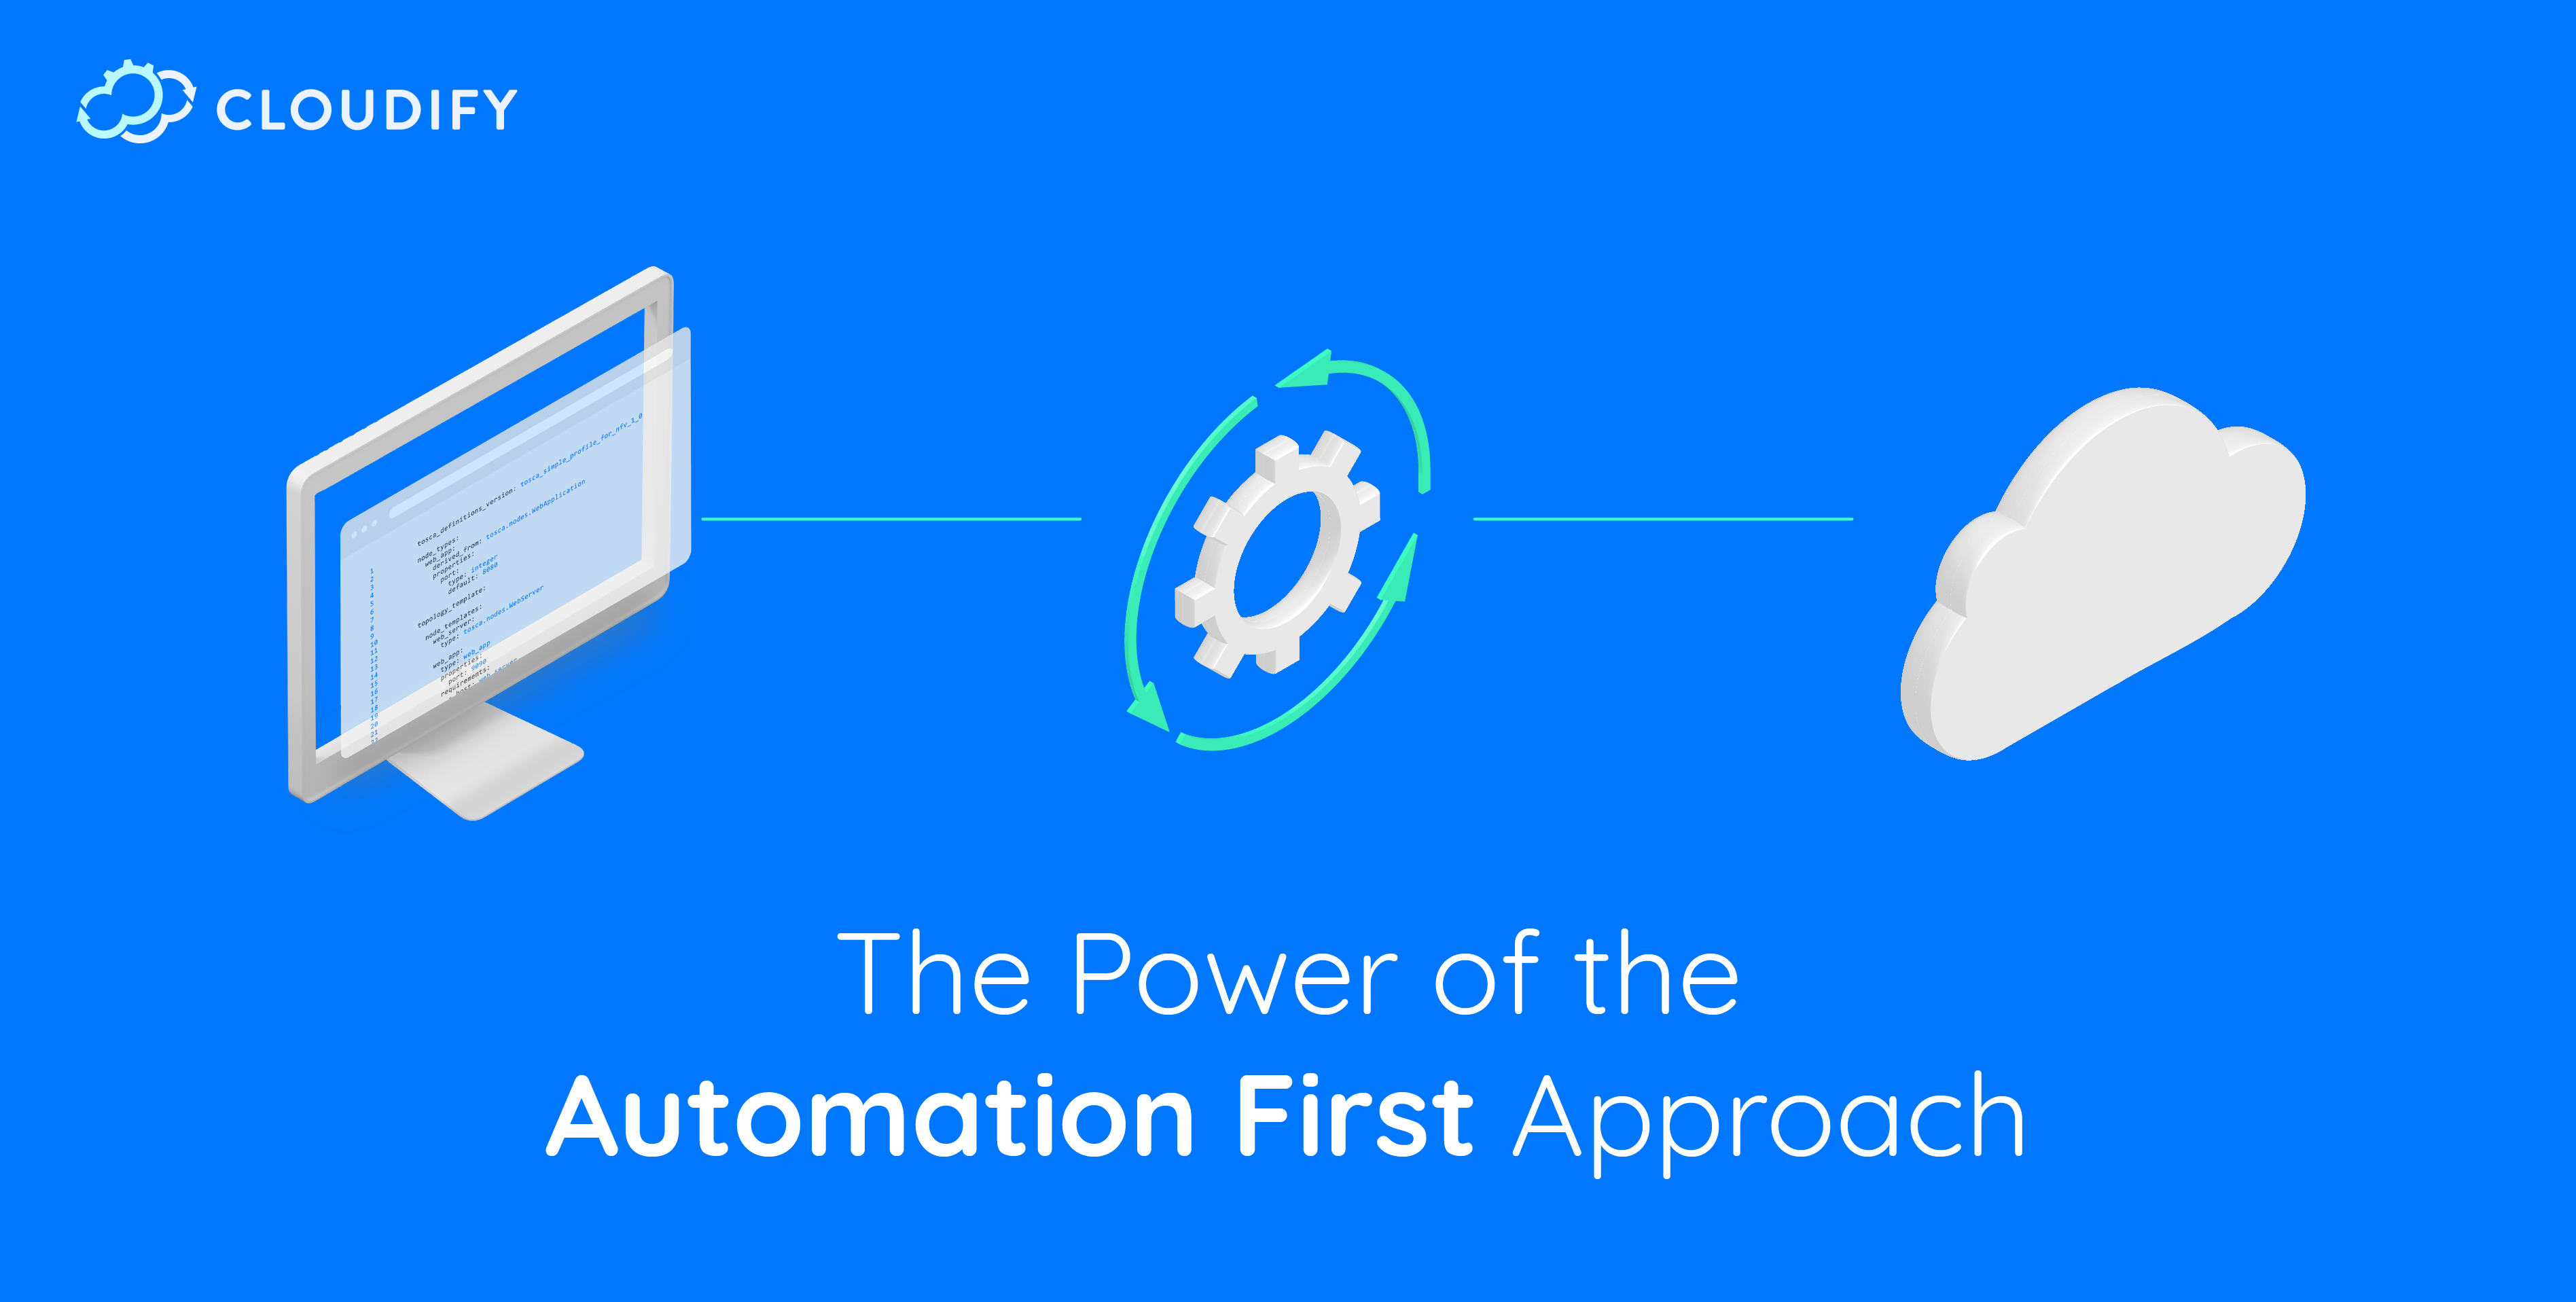 Cloudify-blog-Automation-first_Cloudify-Blog-Automation-First